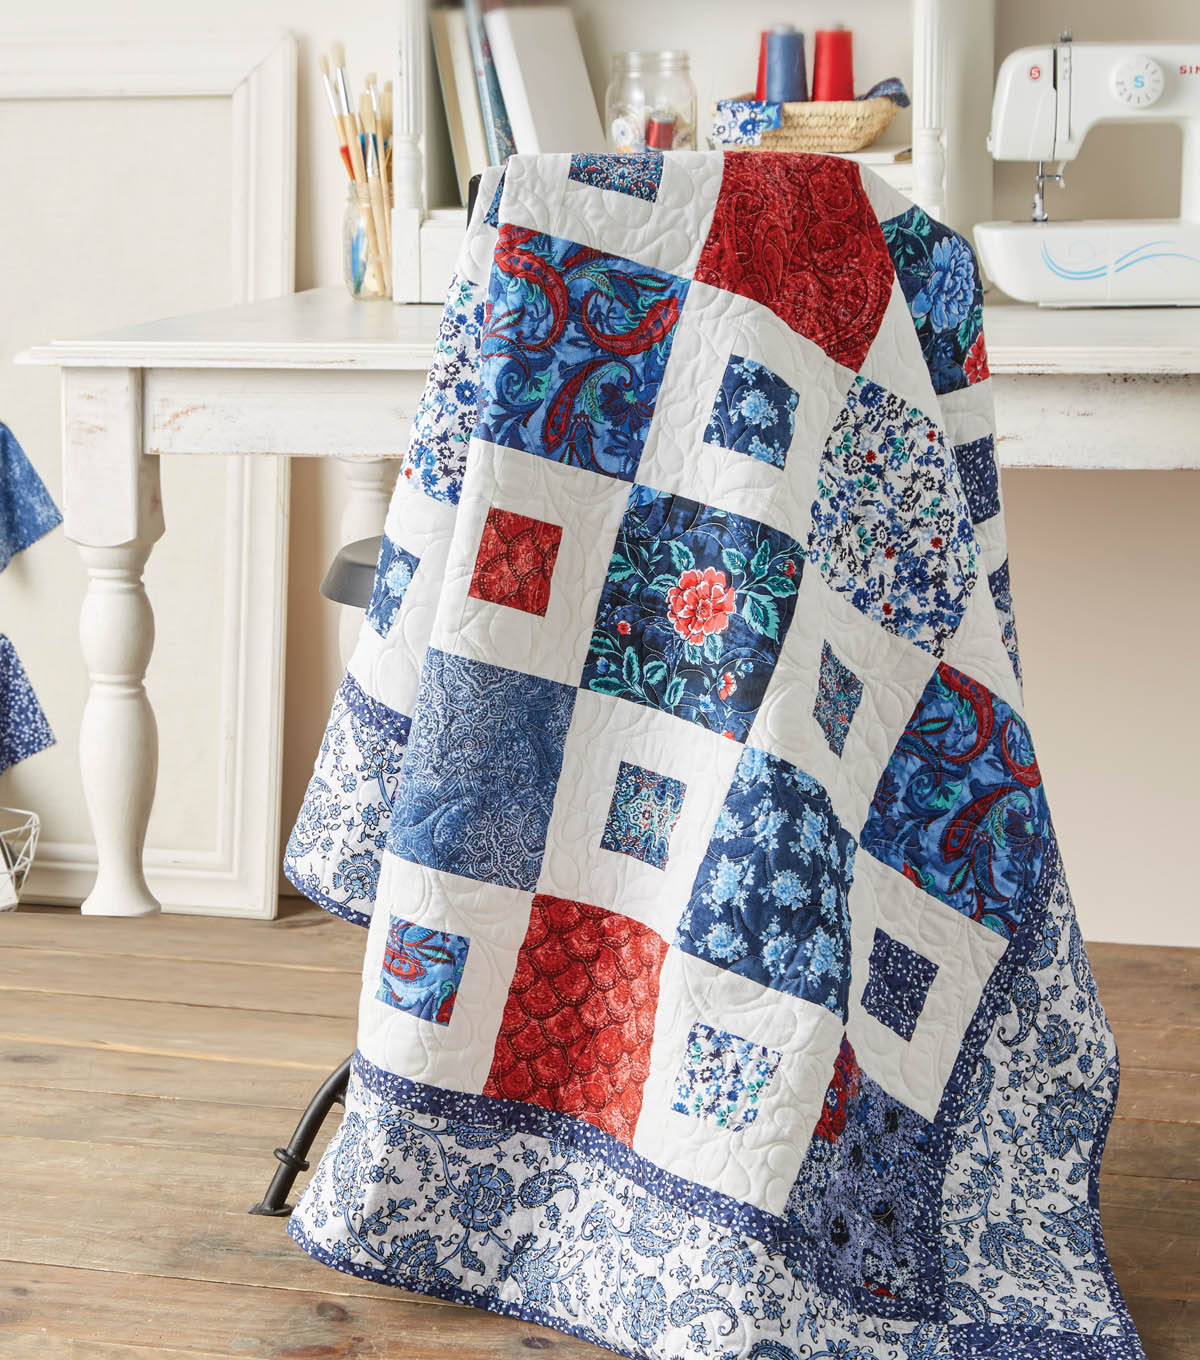 Jo Ann Fabrics And Crafts Mall: Red, White And Blue Quilt